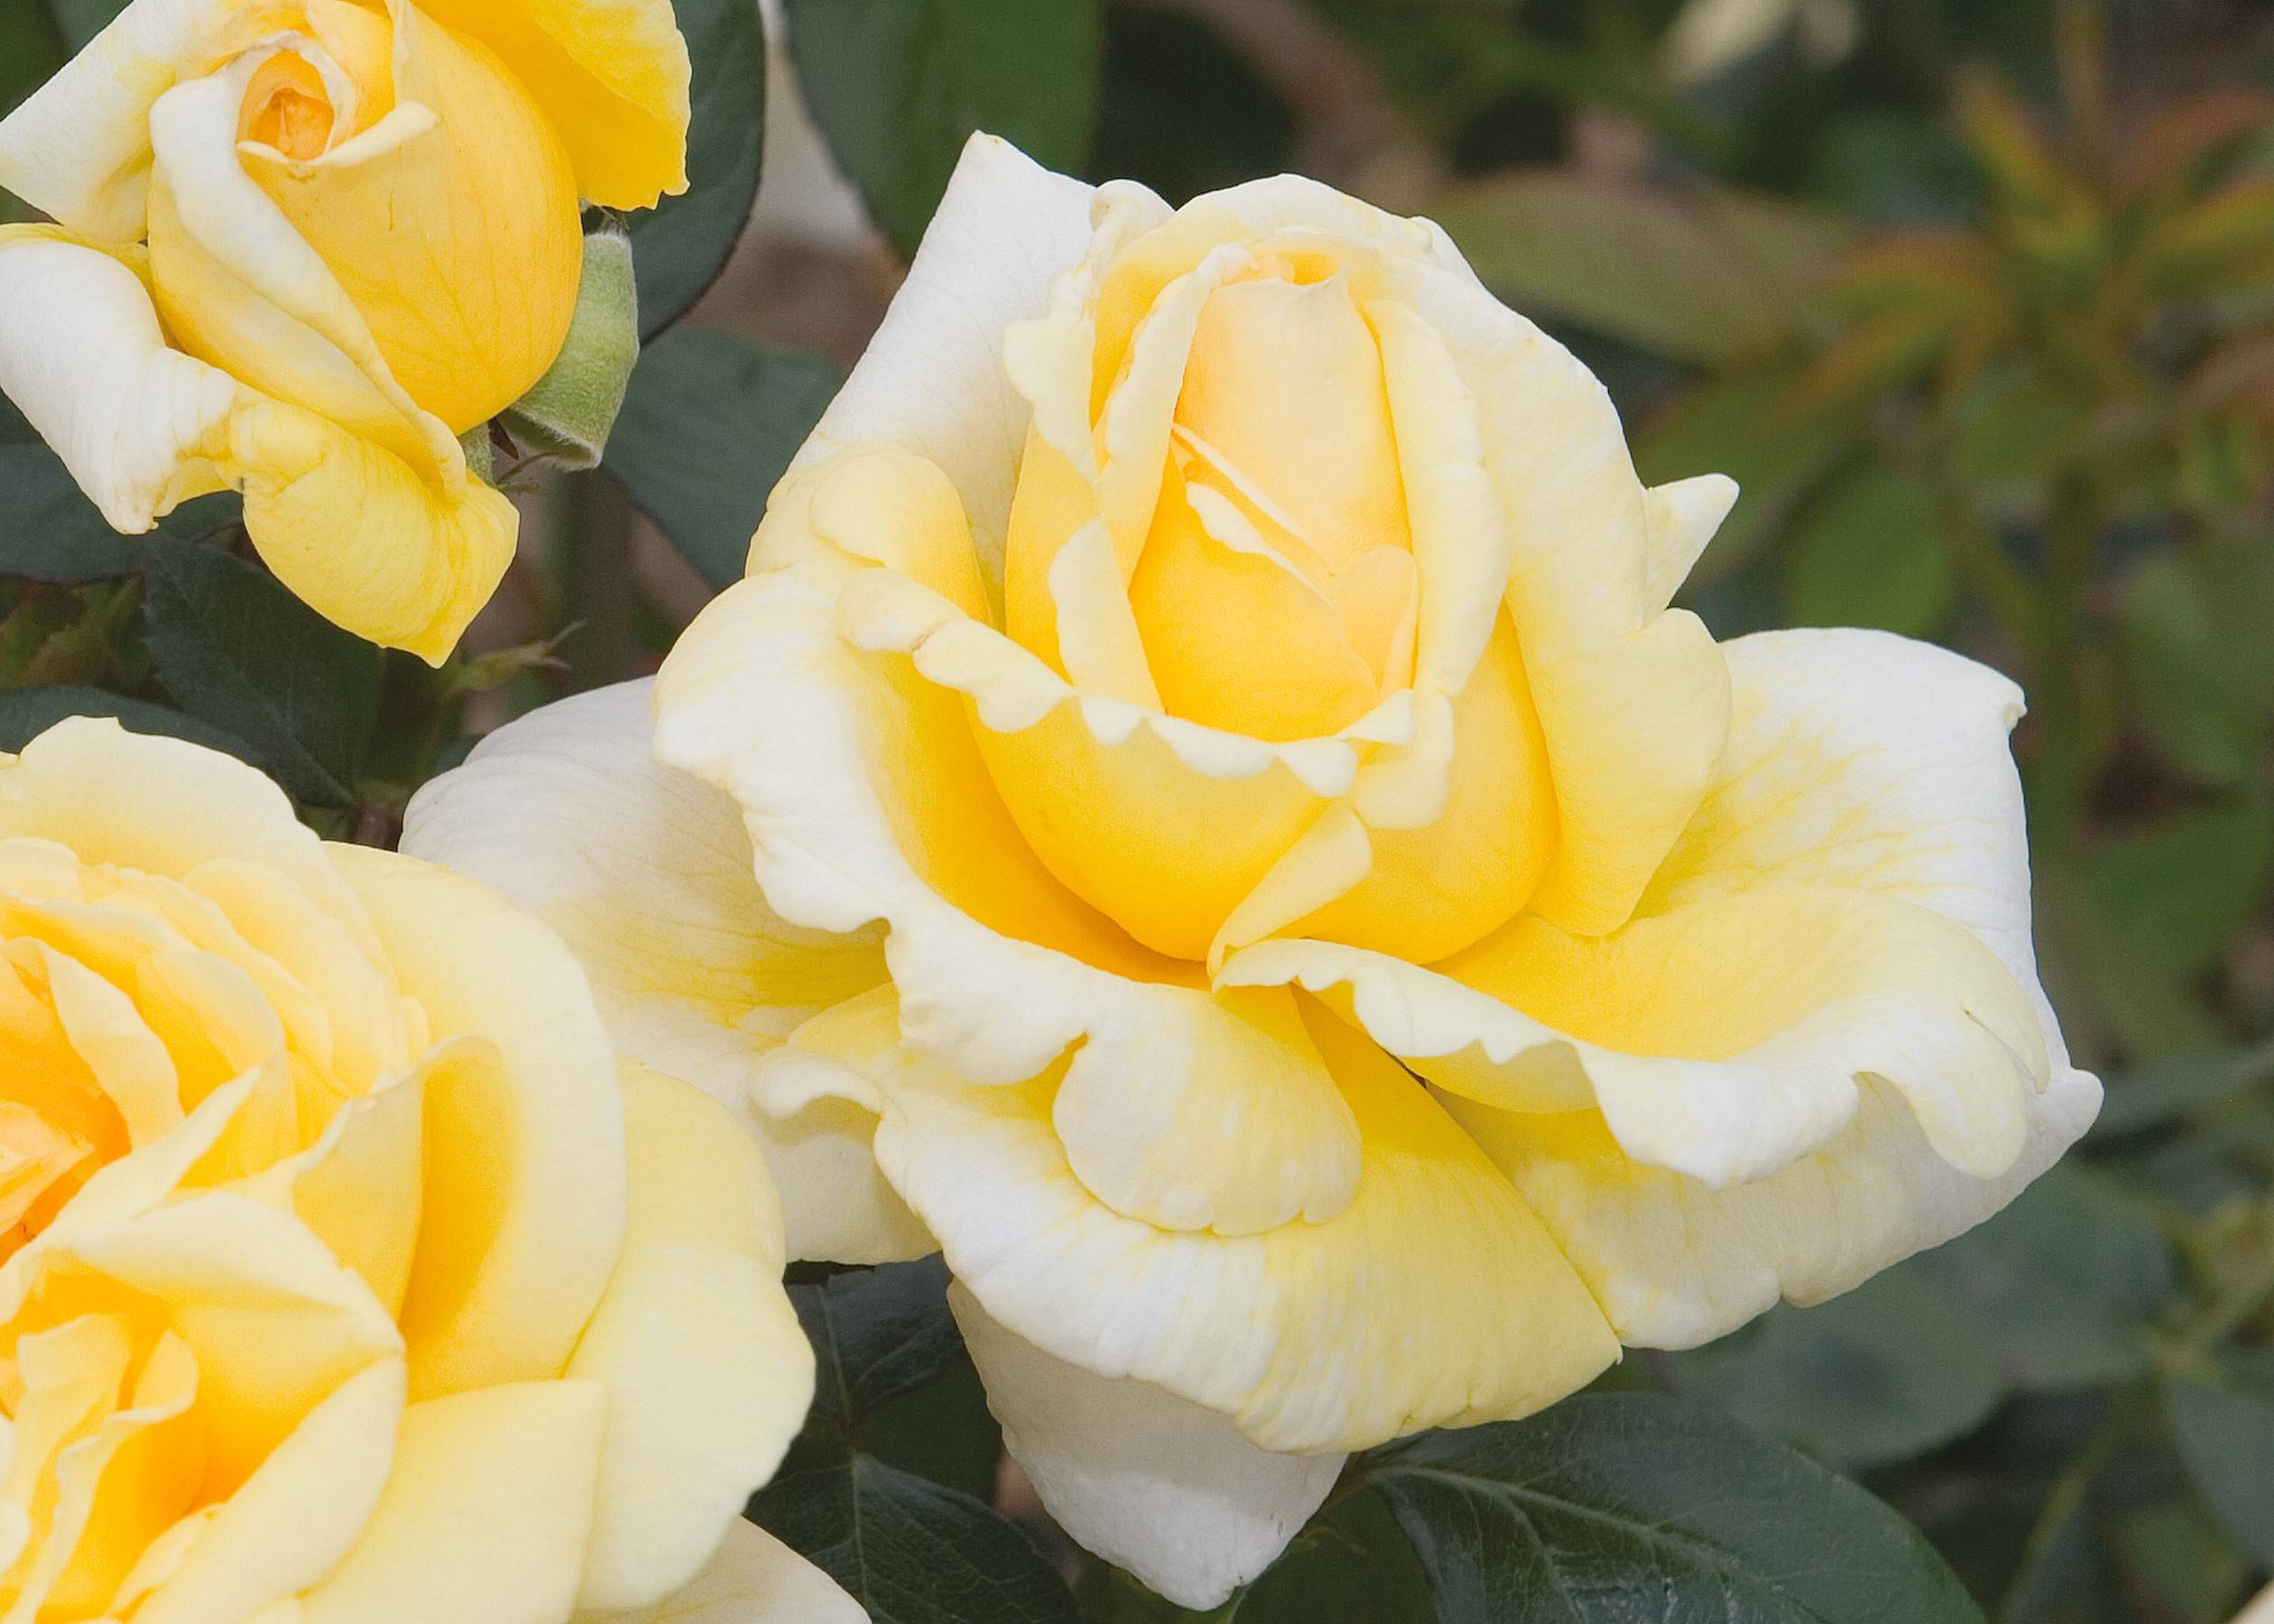 Classic high centers with soft petals fall away in a soft yellow sit atop long stems in the Eternal Flame rose.